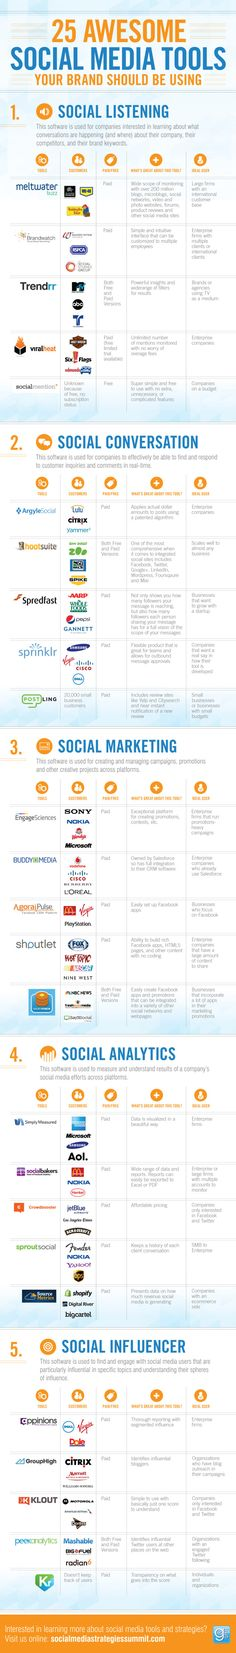 '25 Awesome Social Media Tools' #infographic #smm #socialmedia #fb #in